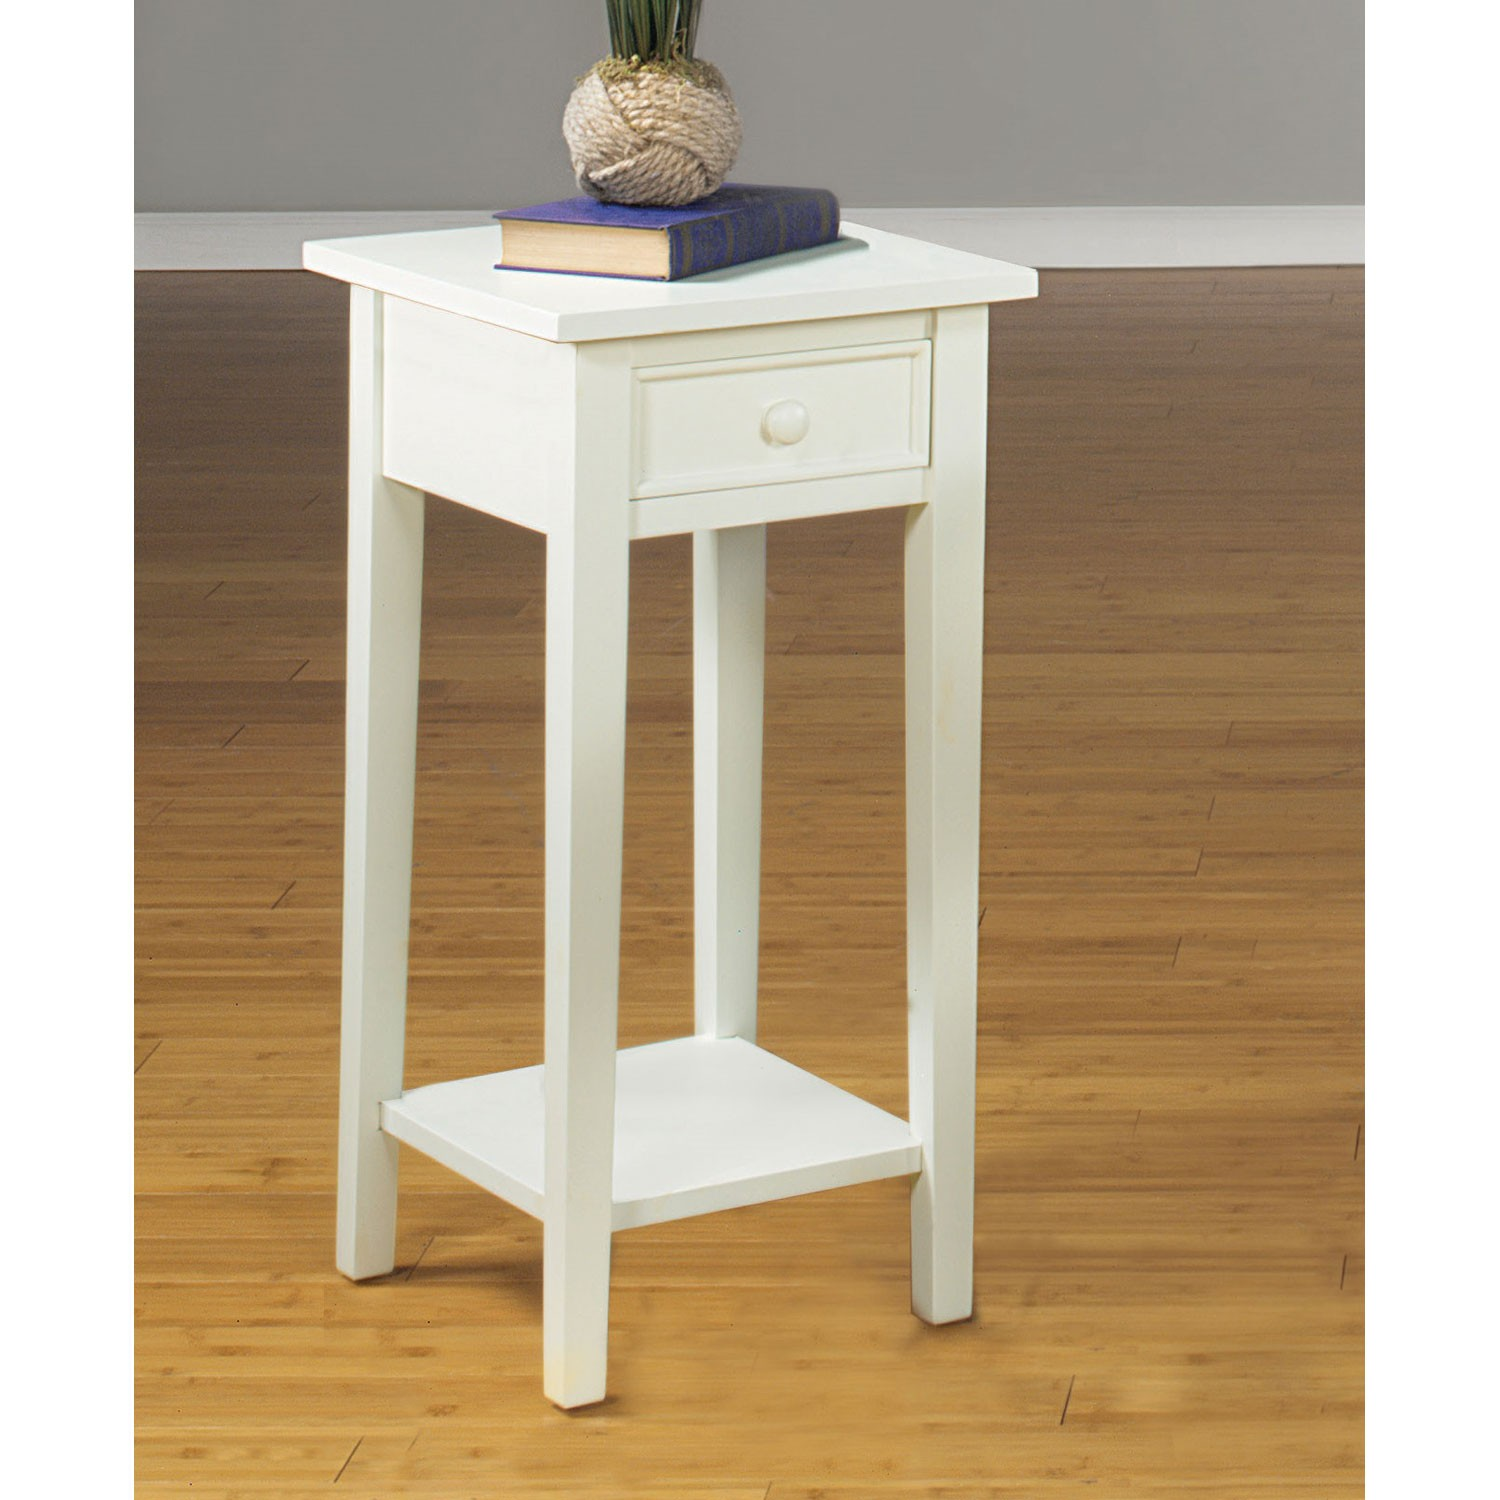 accent table with drawer plant stand antique white sturbridge simple alexa home automation mirror lamp metal coffee set inch tall drummer stool adjustable height wilcox furniture